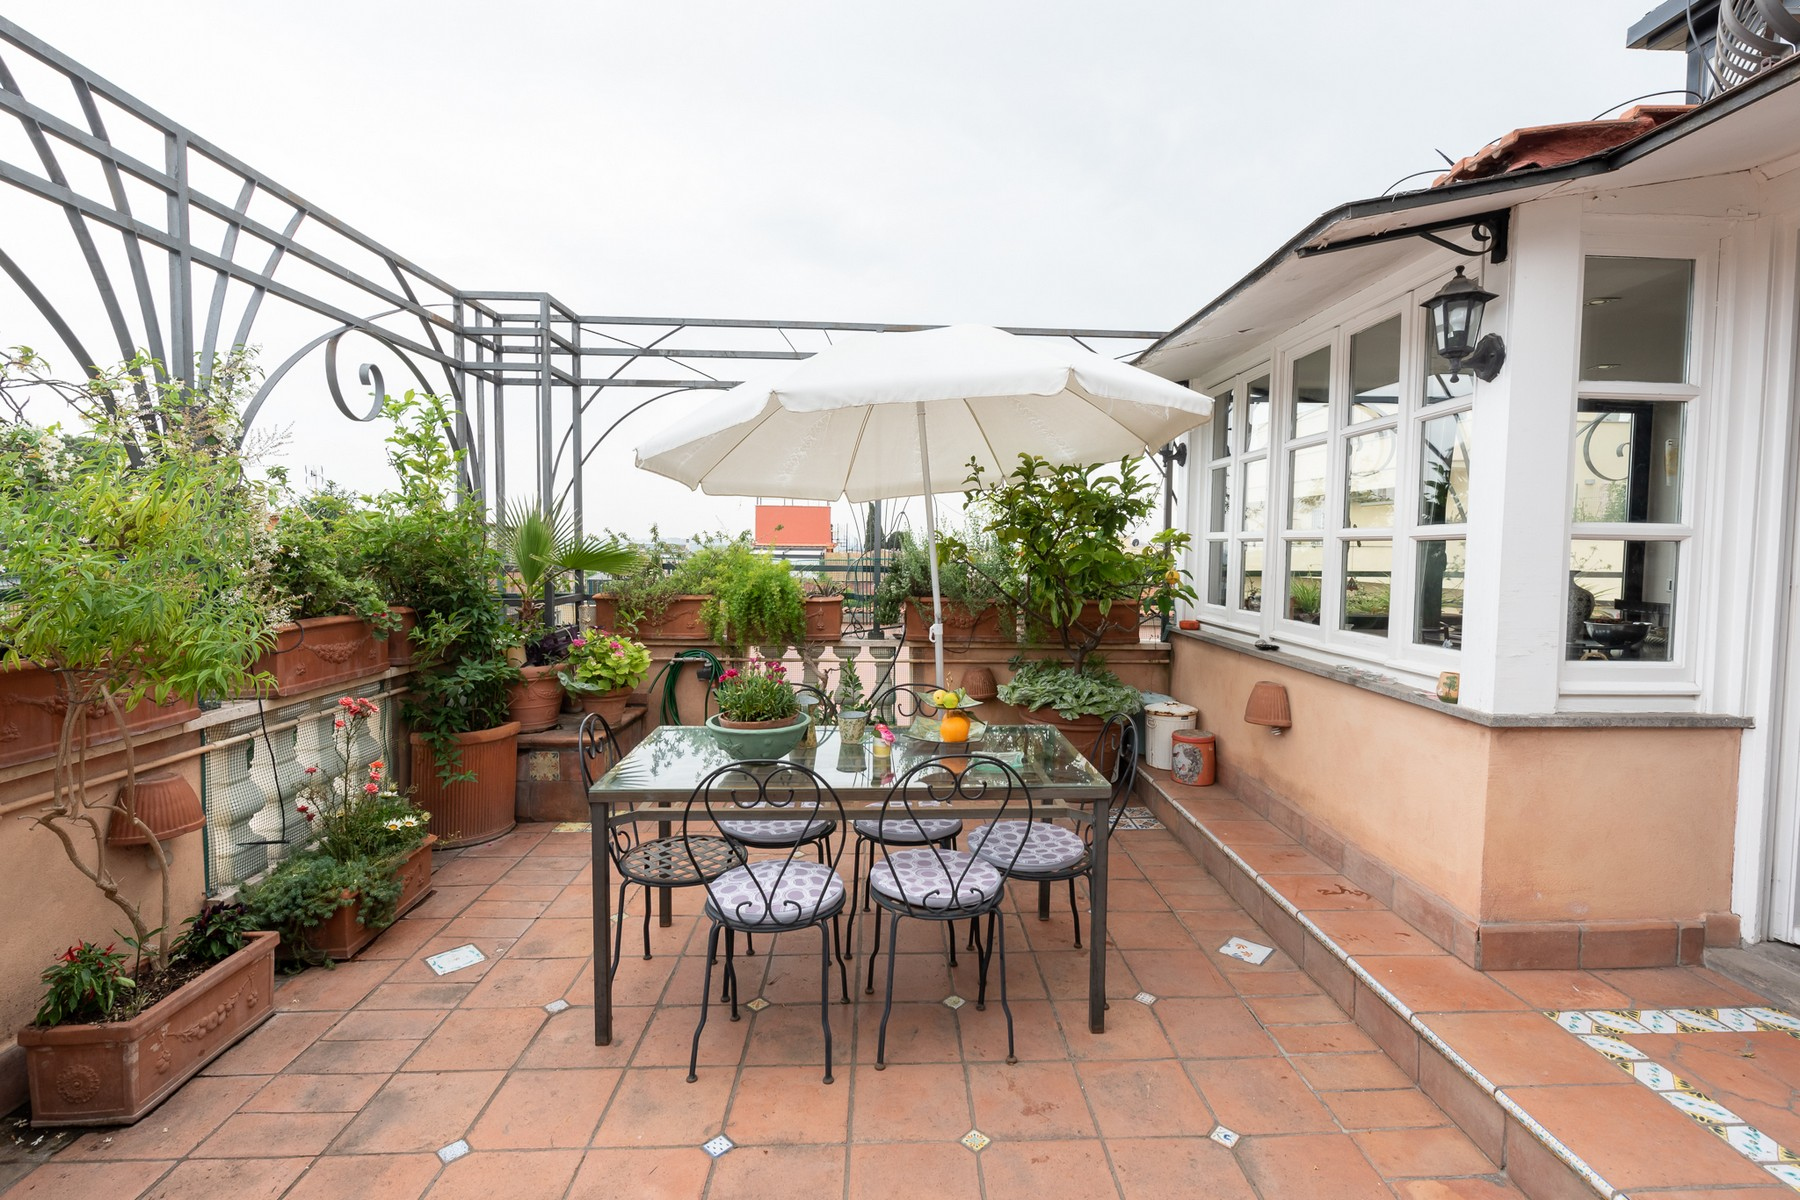 Property for Sale at Charming penthouse with terraces in a Liberty villa Rome, Rome Italy